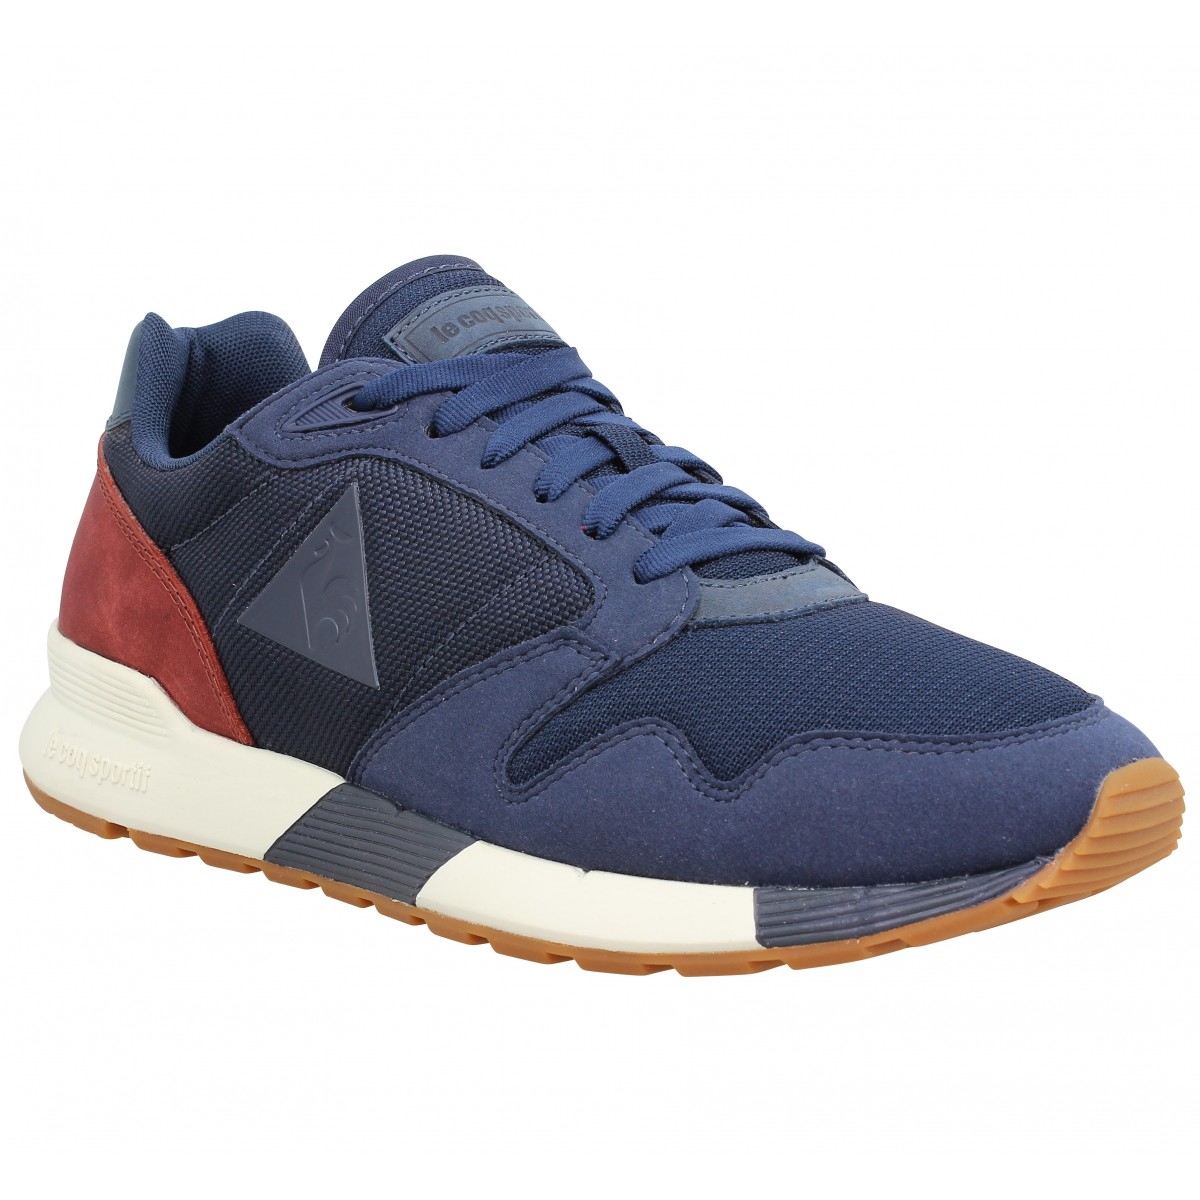 Baskets LE COQ SPORTIF Omega X Craft toile Homme Marine